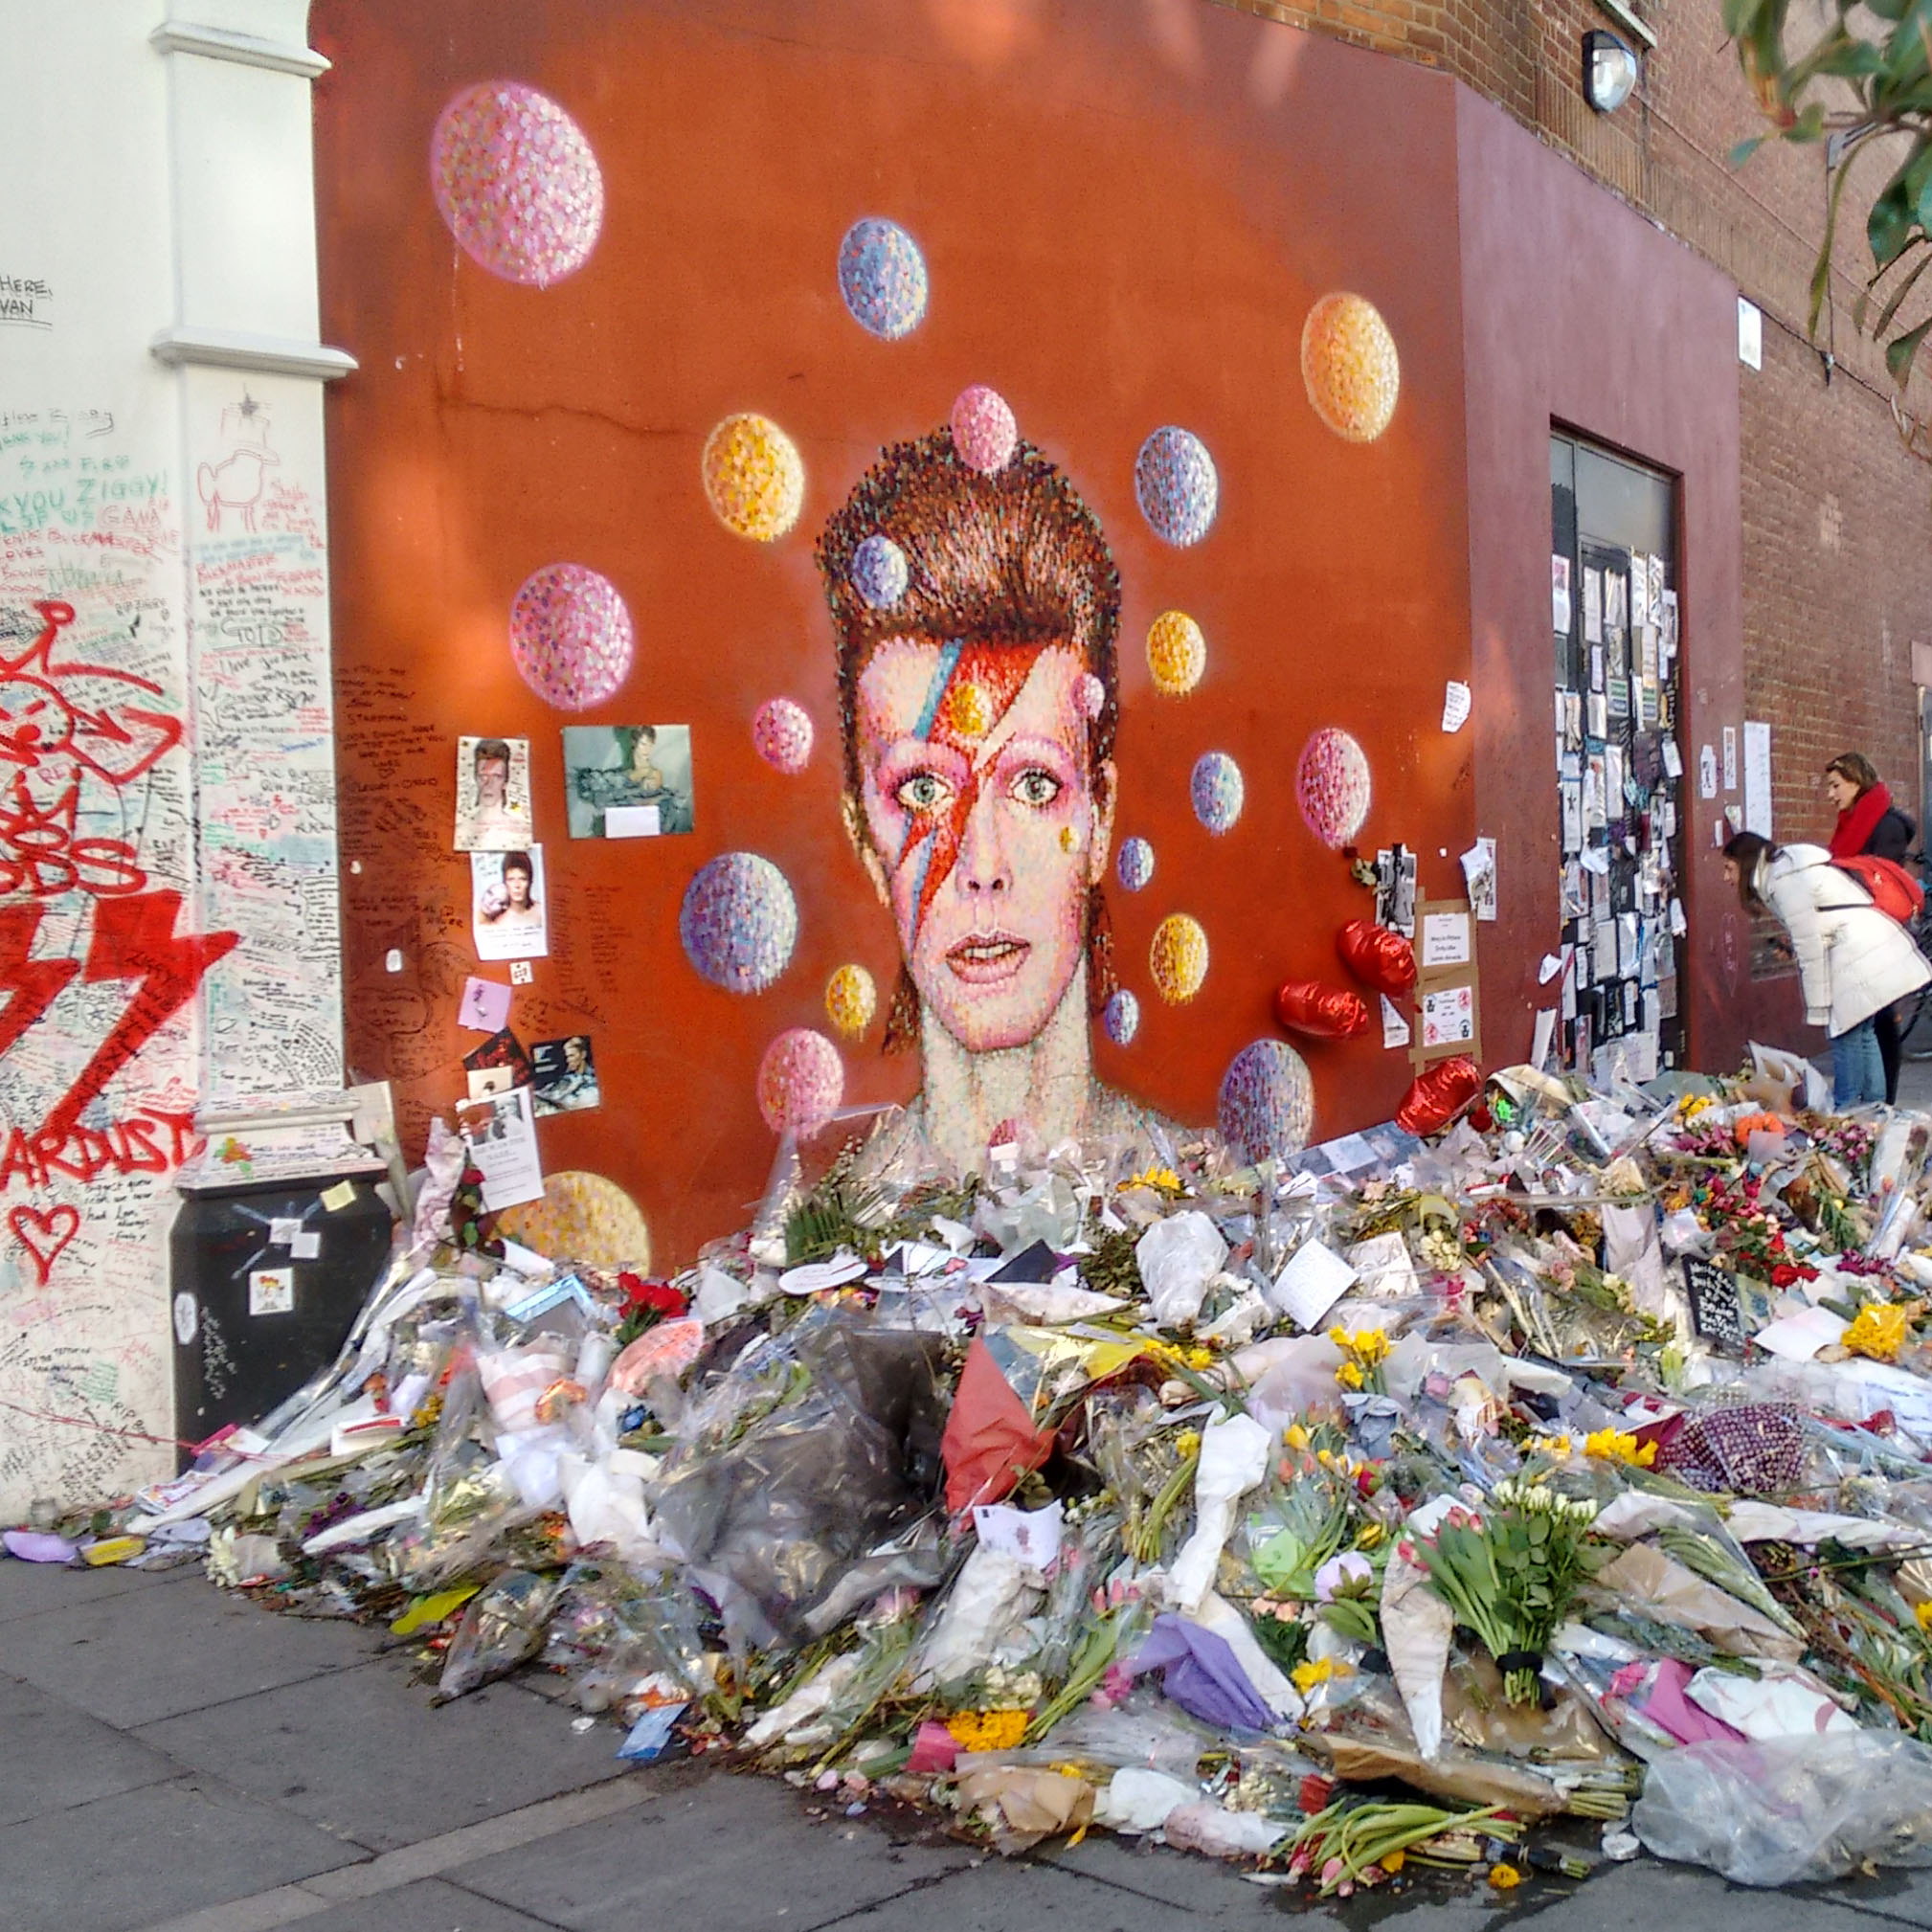 wall mural of David Bowie with pile of flower bouquets on the ground in front of it